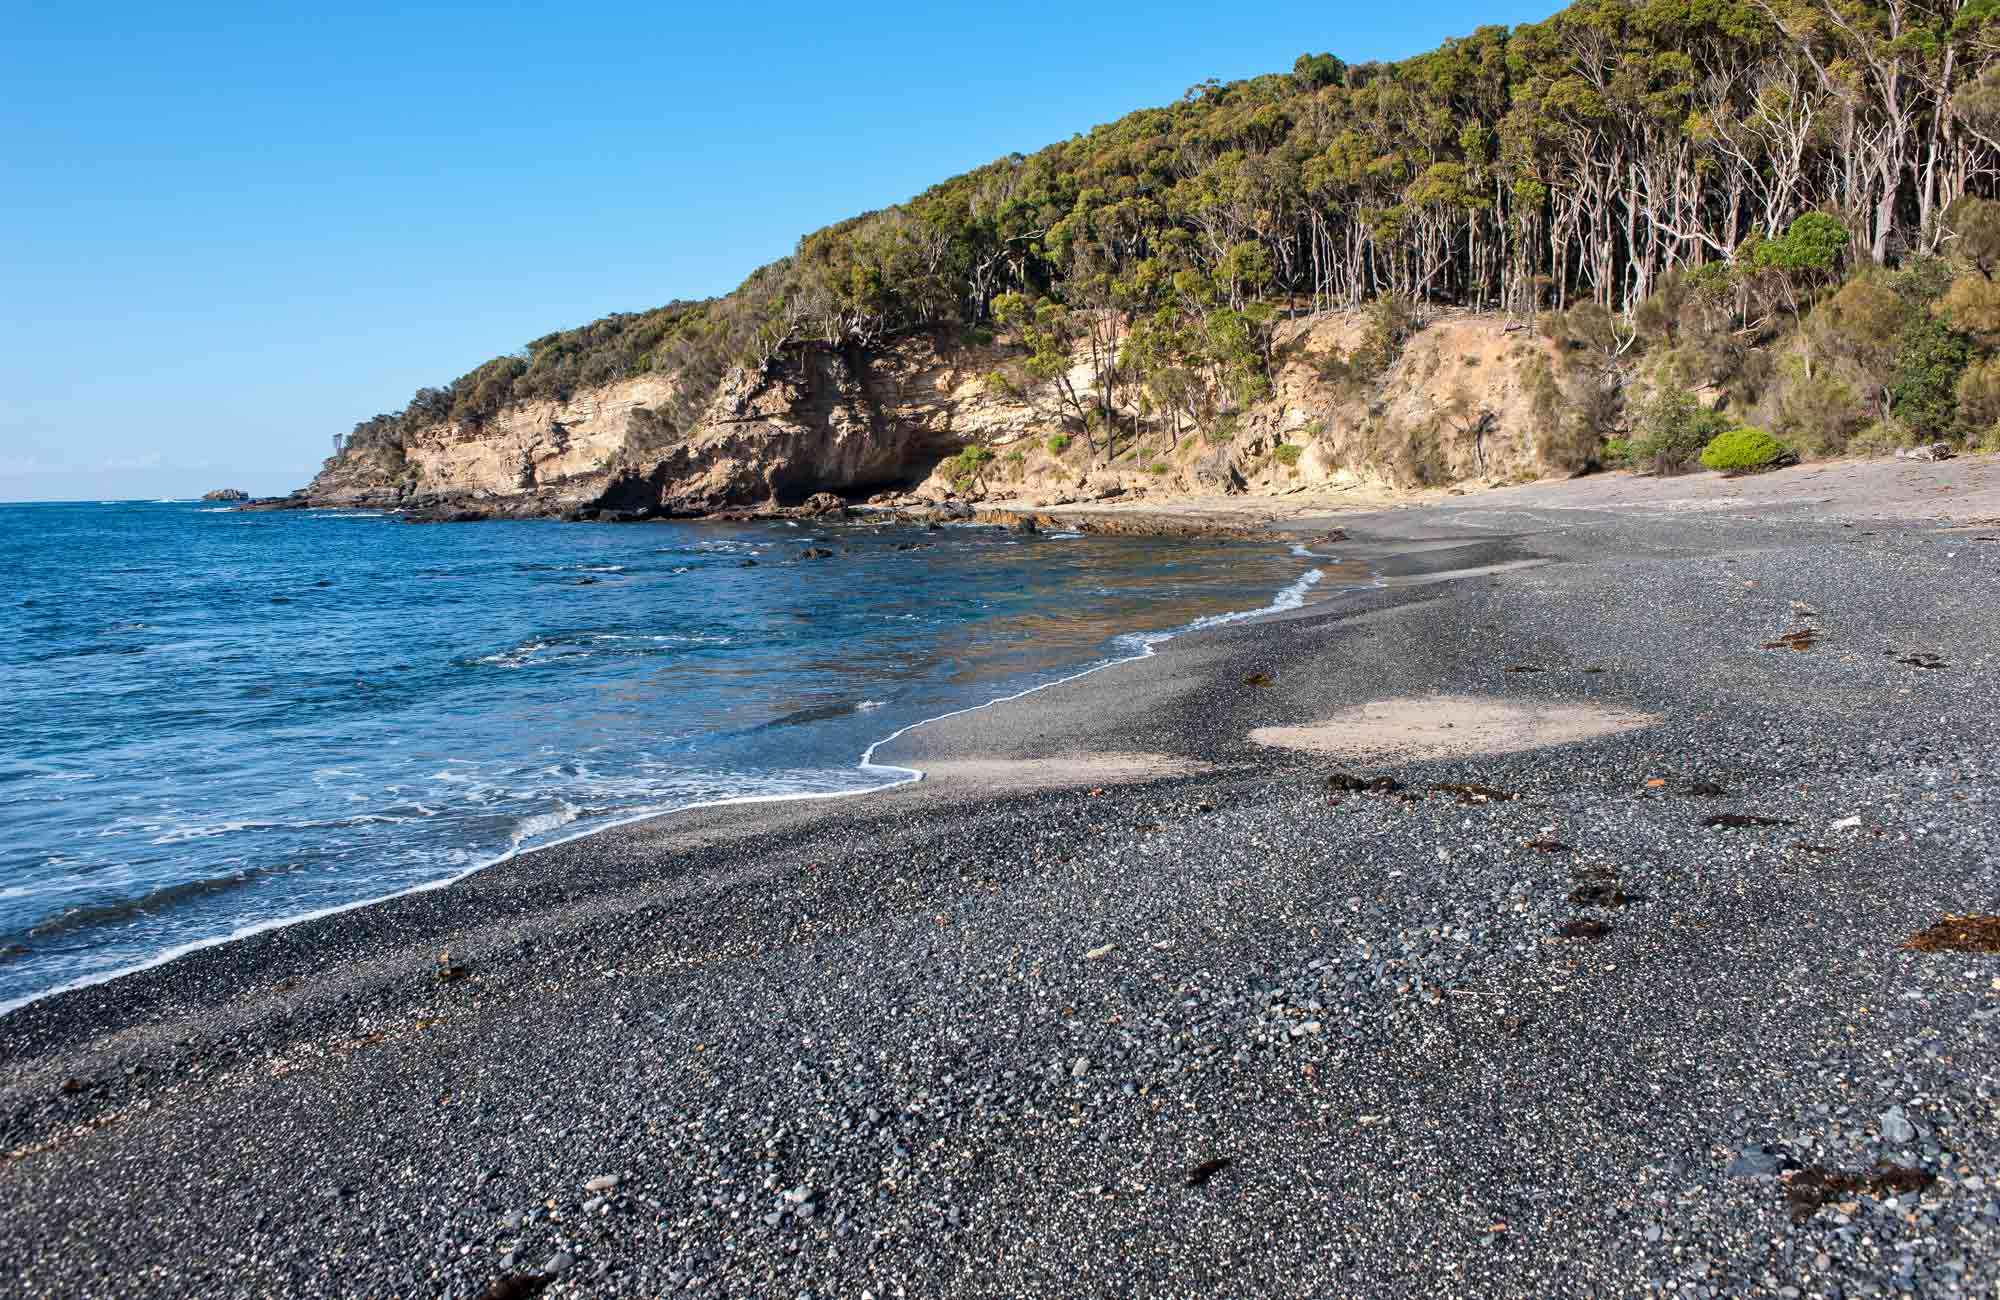 Darks Beach walking track, Murramarang National Park. Photo: Michael van Ewijk